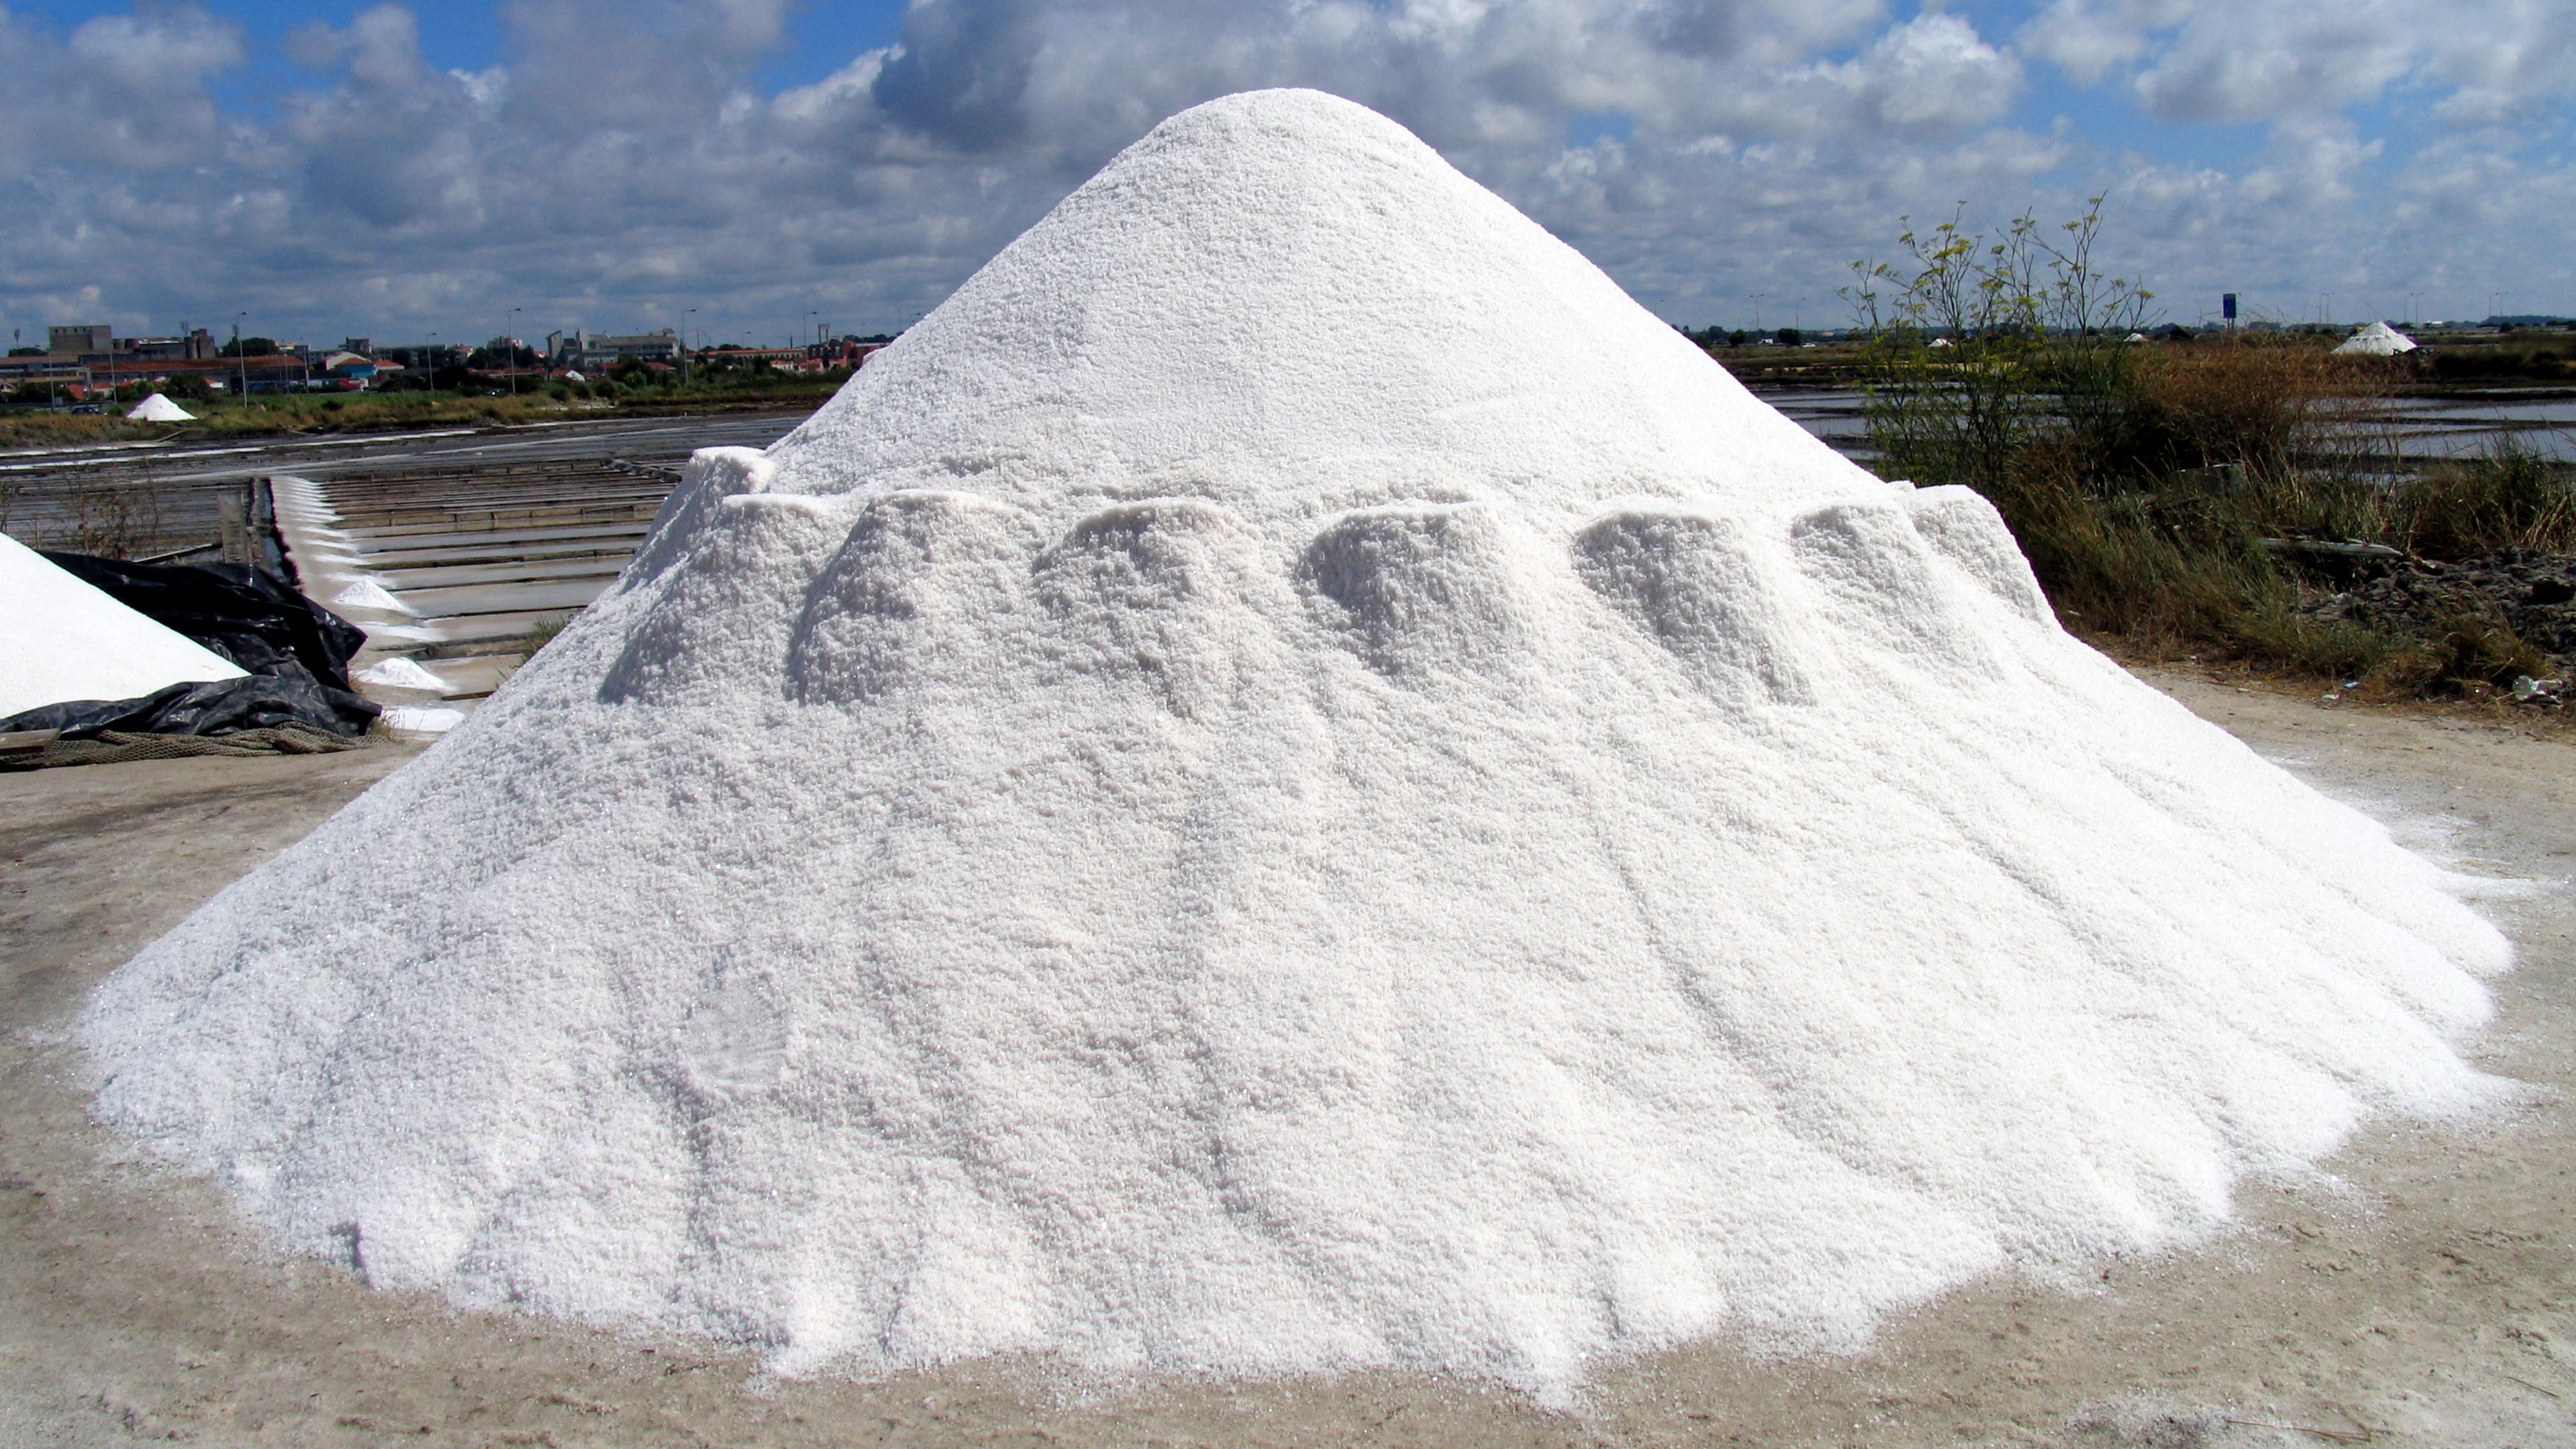 Dealing with salt issues - Snow Magazine